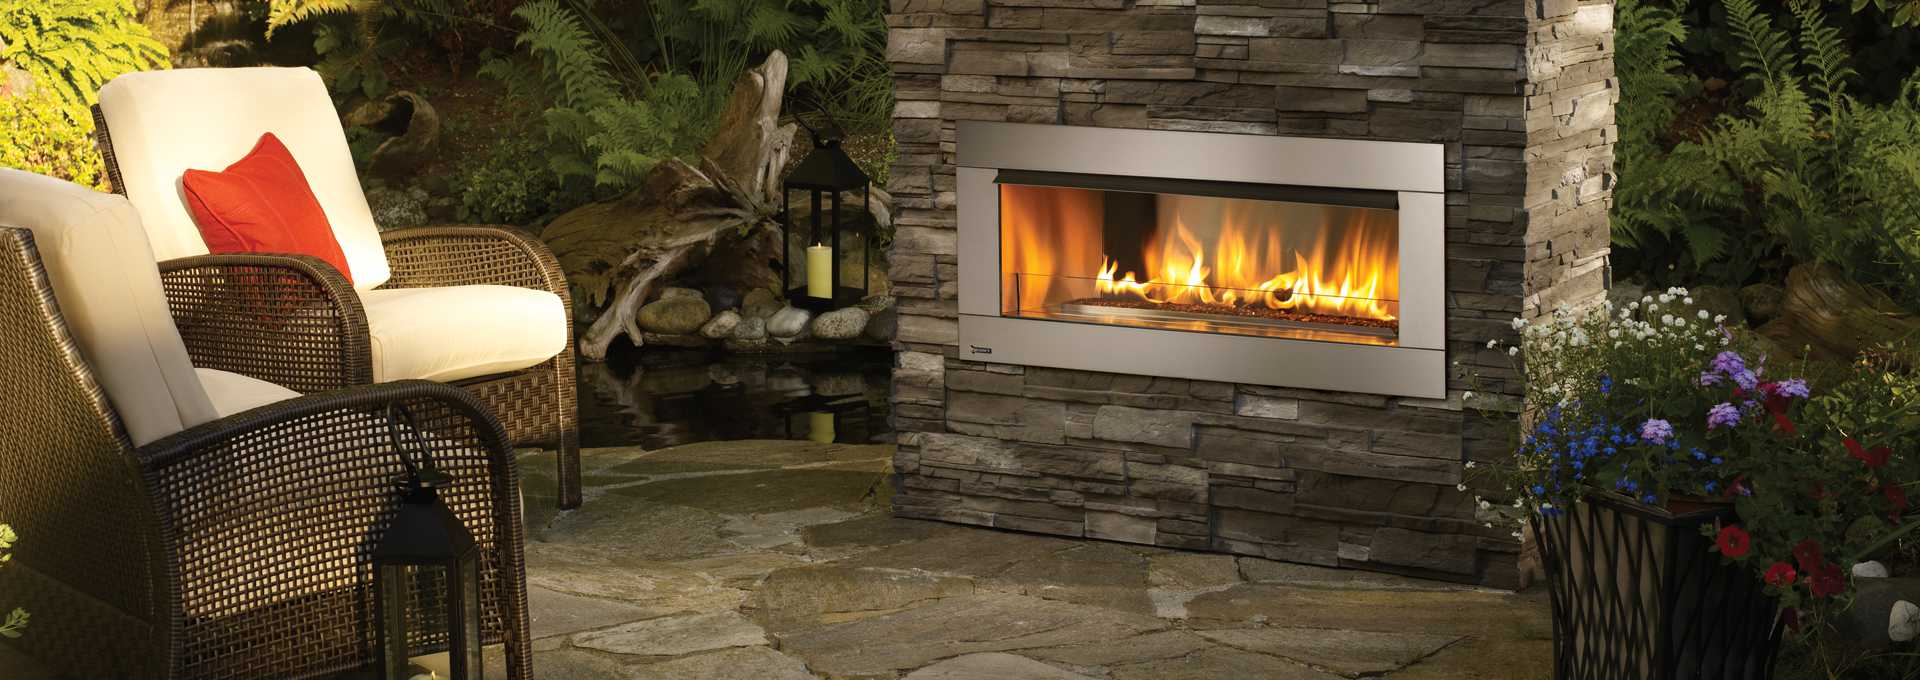 outdoor gas fires regency fireplace products australia